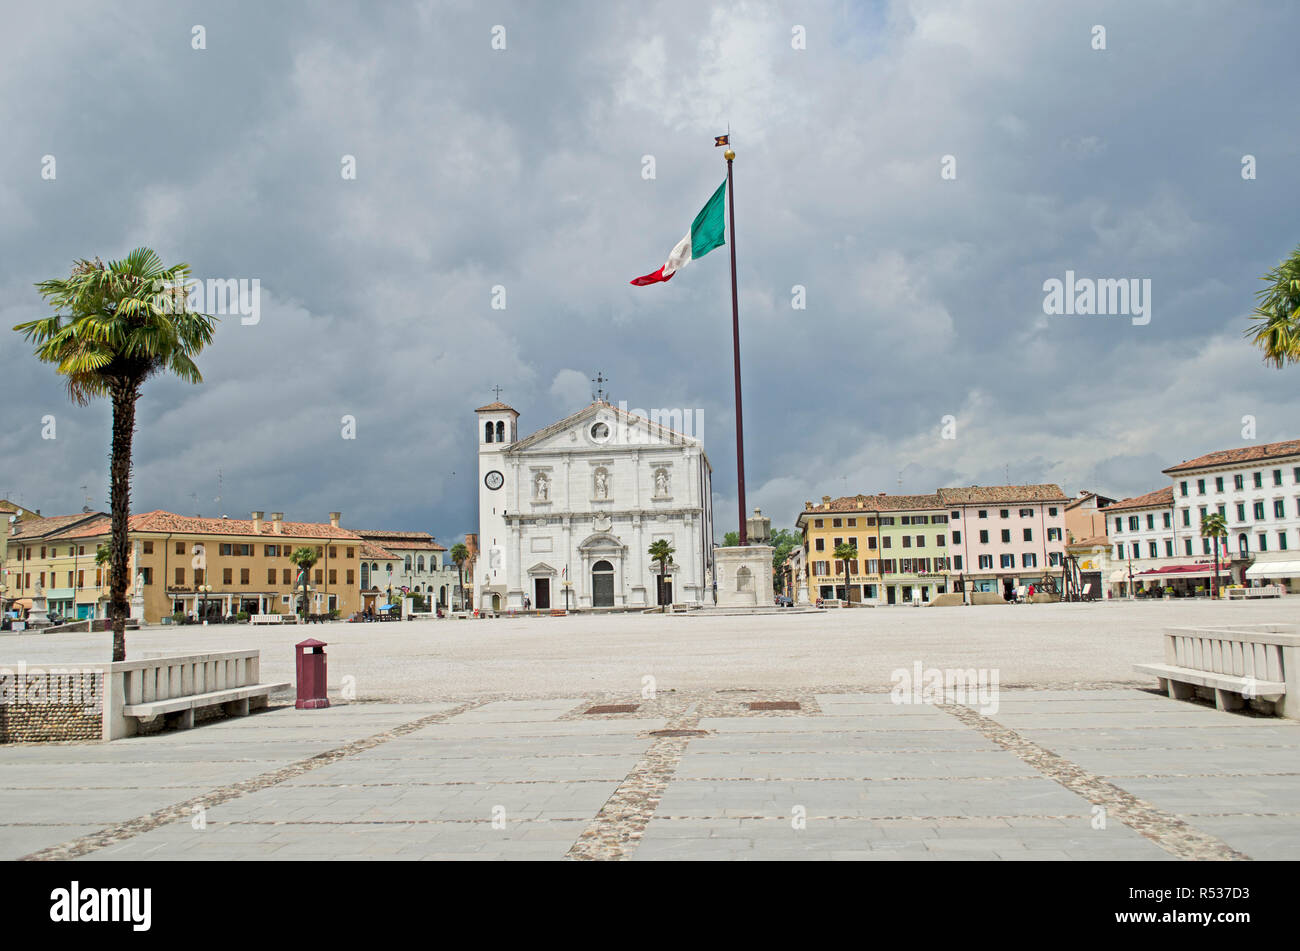 Palmanova town, example of star fort of the Late Renaissance, included in Unesco heritage. Palmanova 2016 - Stock Image